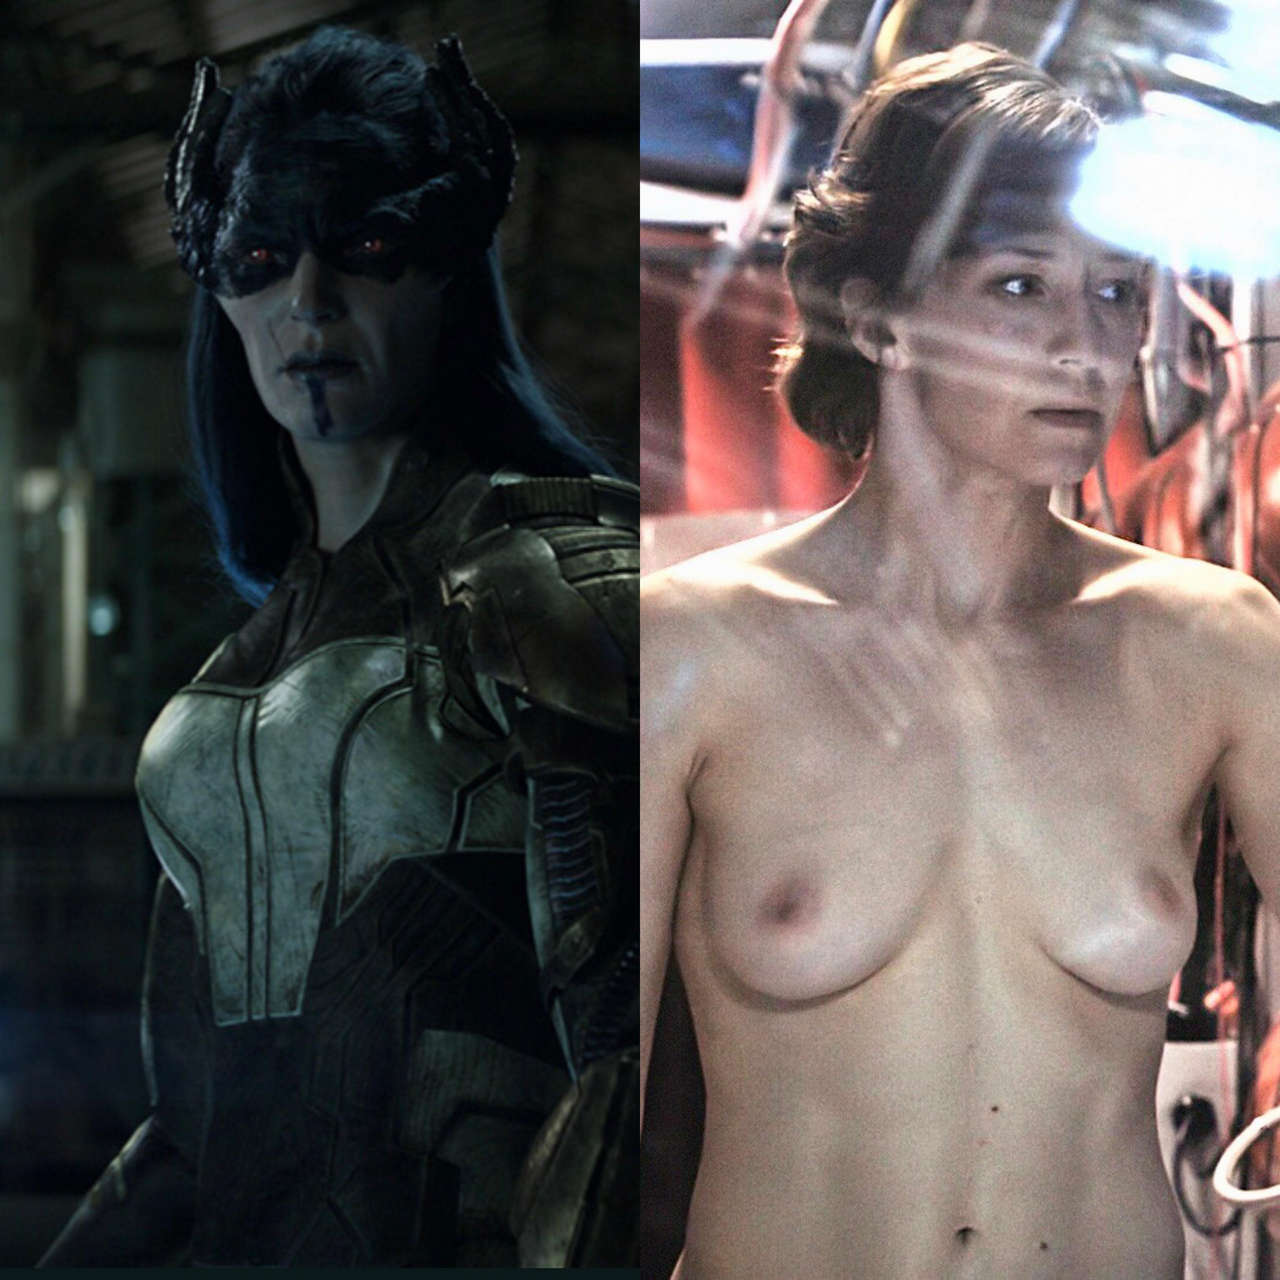 Proxima Midnight Carrie Coon On Off NSFW